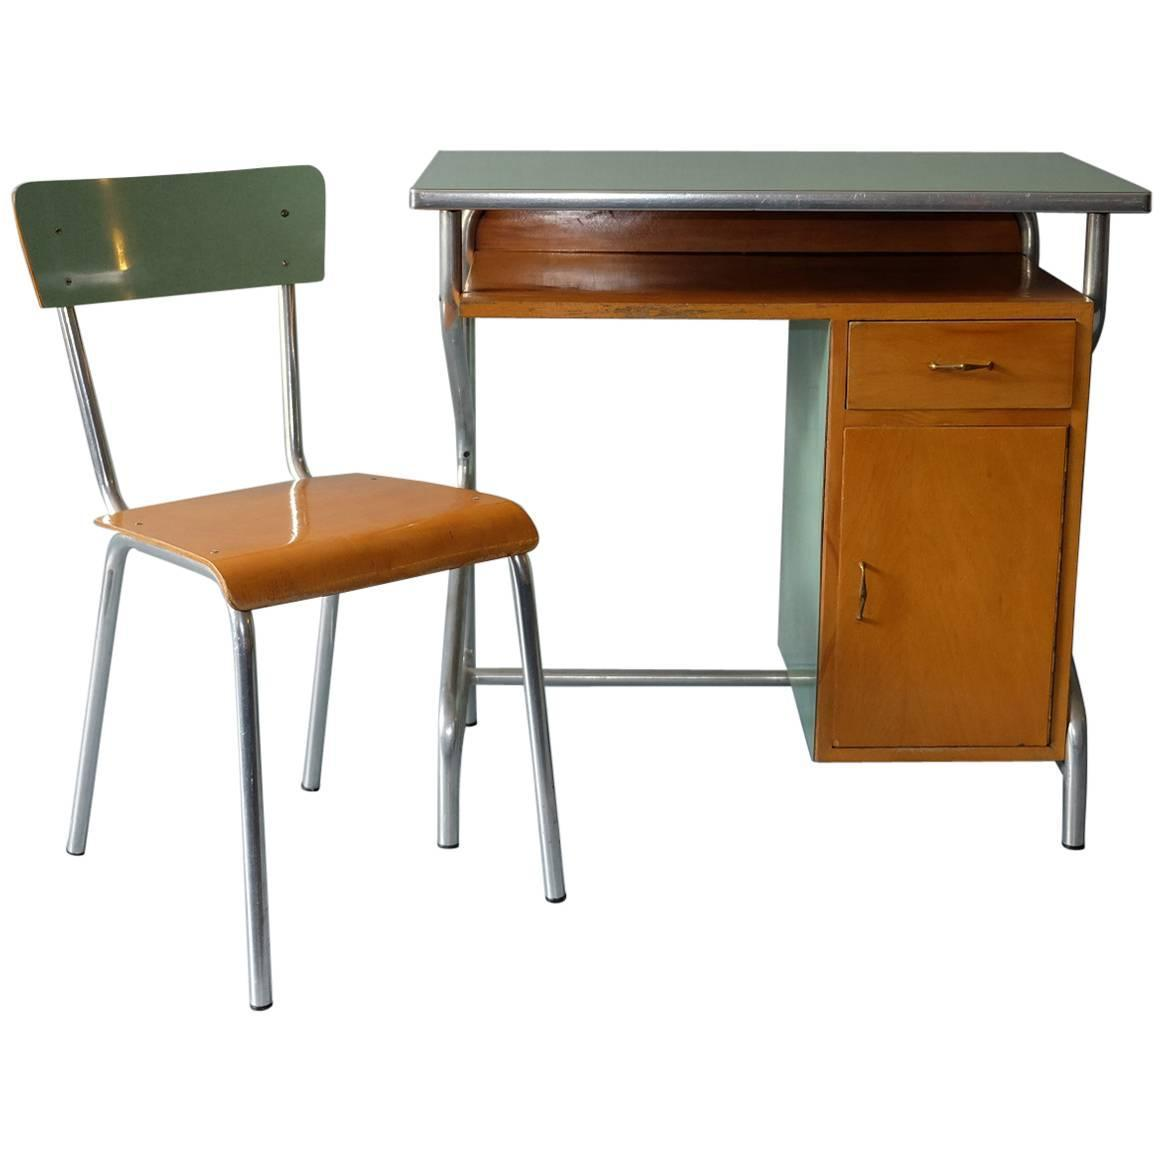 Italian small desk and chair metal and formica 1950s at Small steel desk